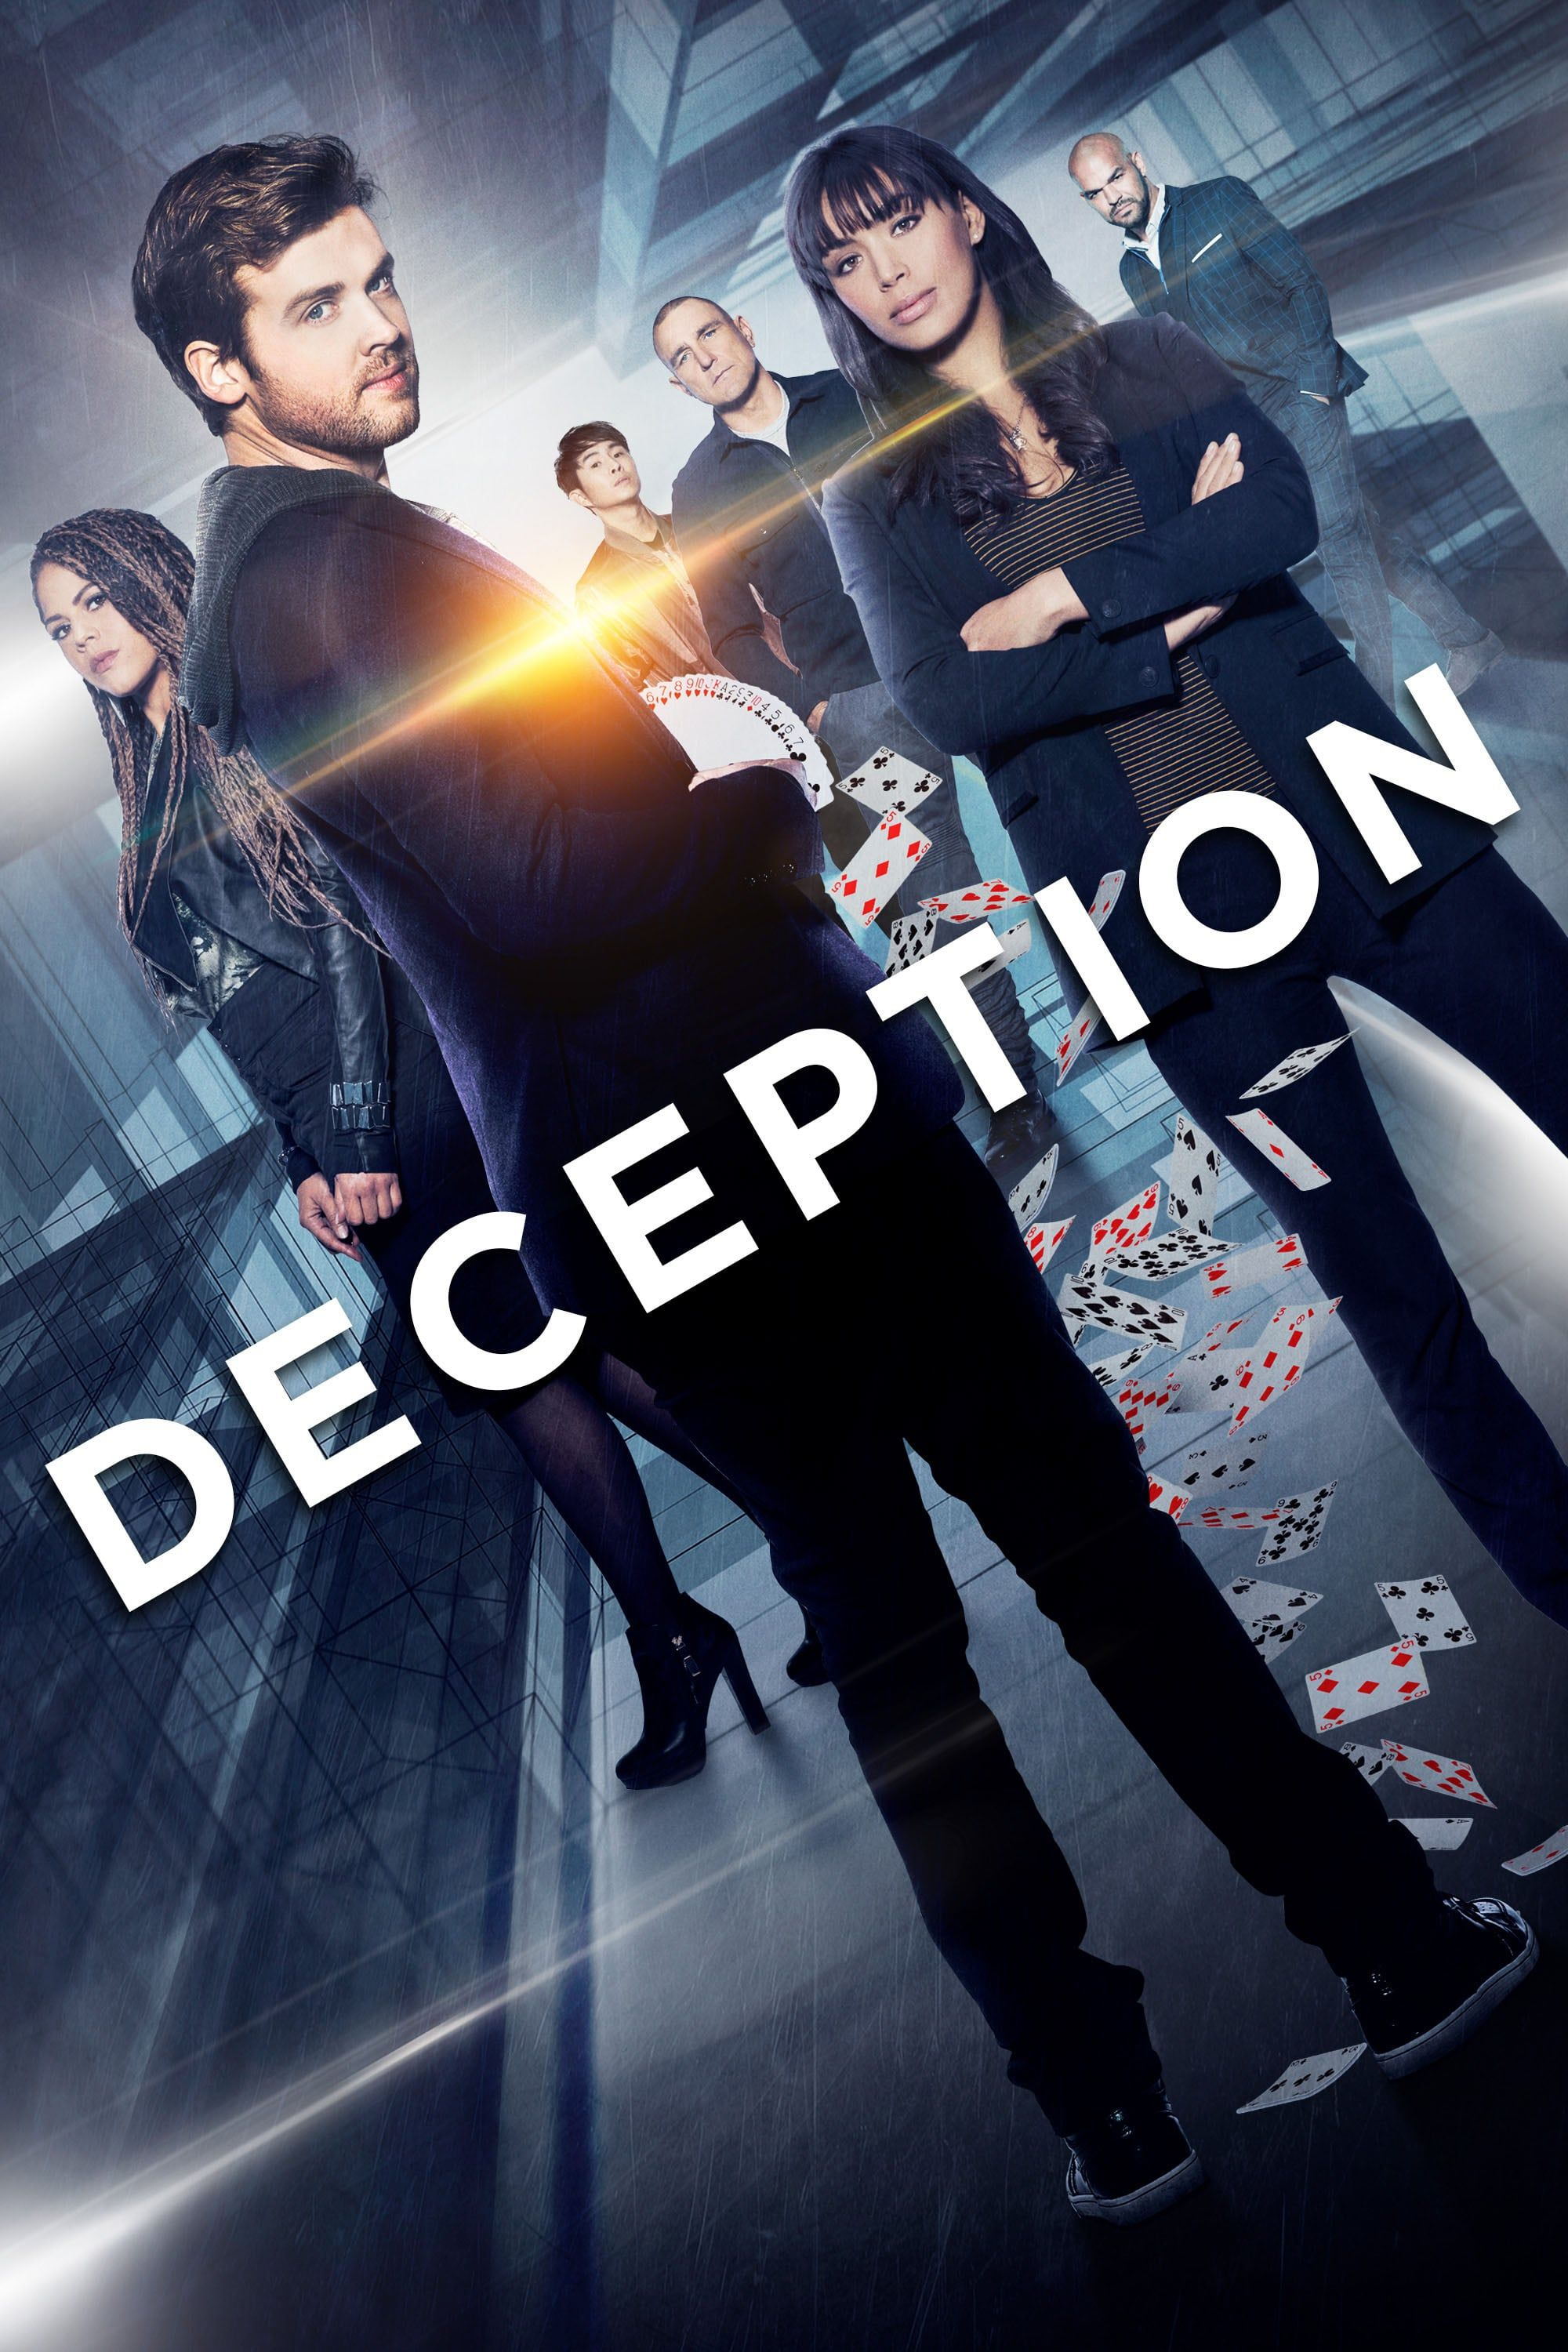 TV on DVD Review Deception Episode online, Tv series